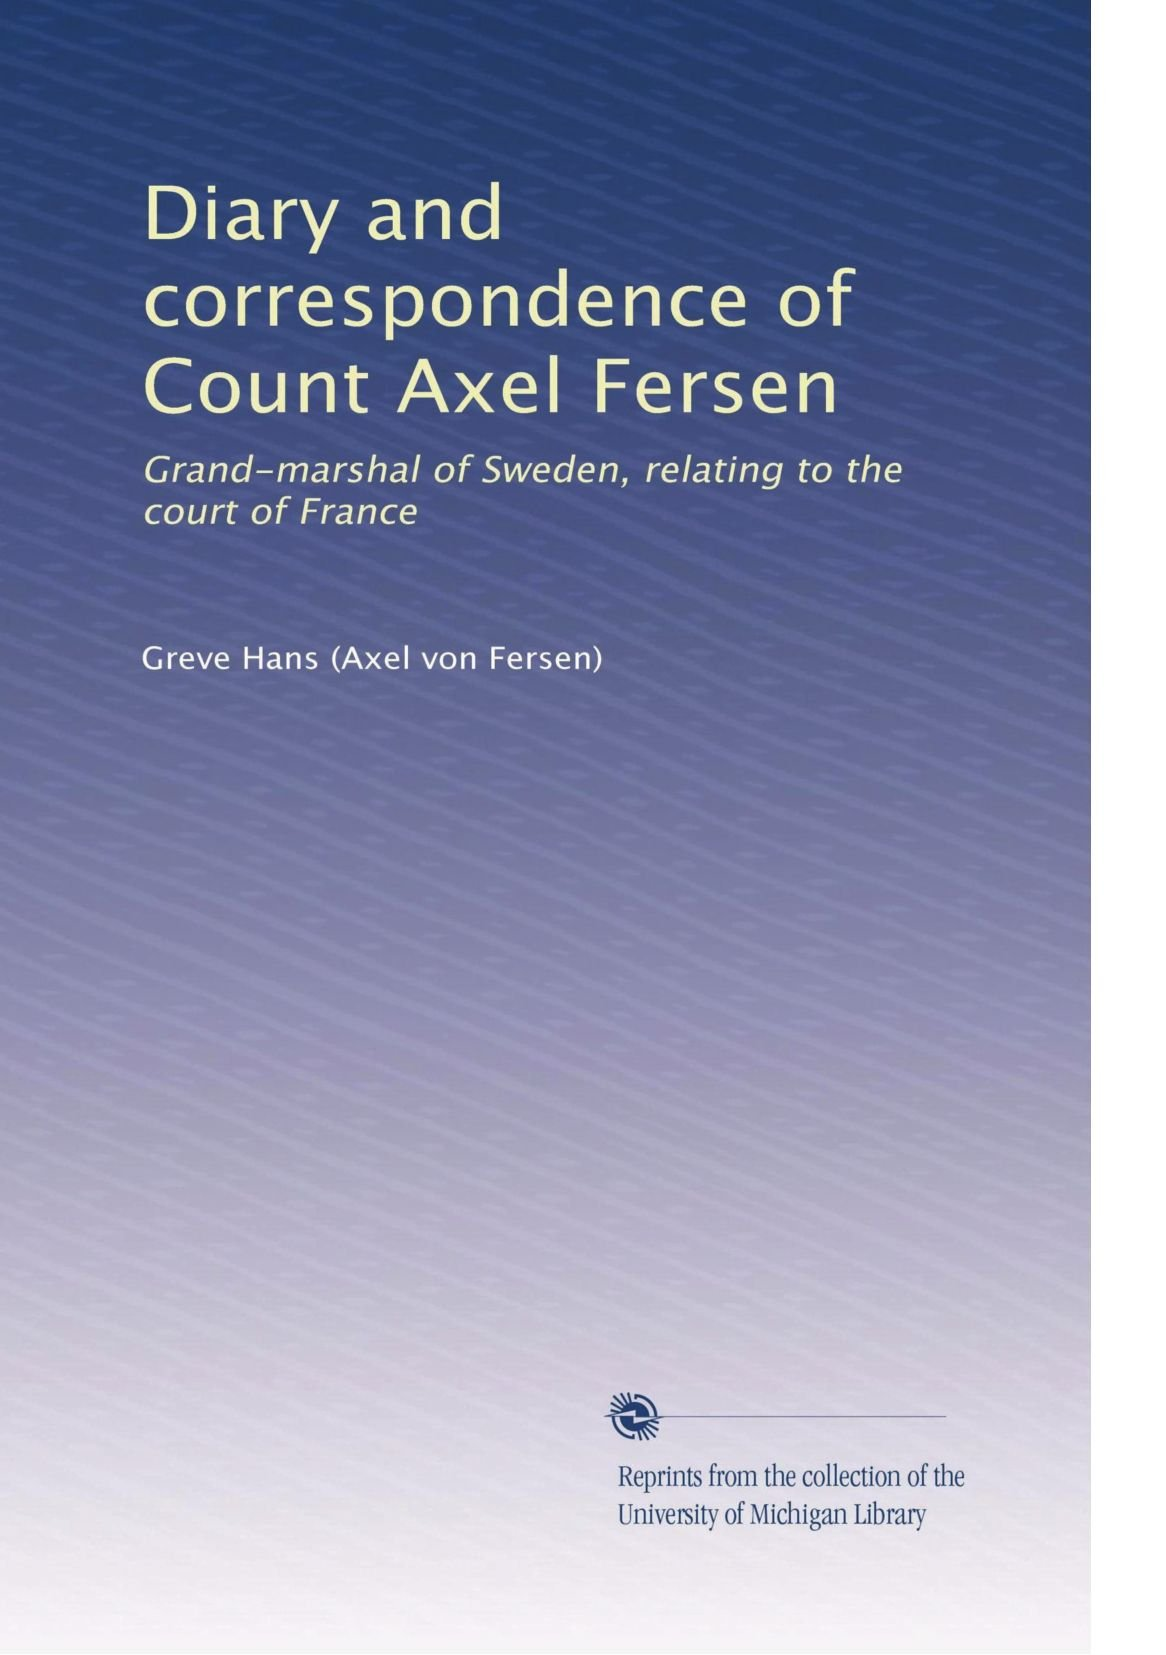 Diary and correspondence of Count Axel Fersen: Grand-marshal of Sweden,  relating to the court of France: Greve Hans: 9781275097438: Amazon.com:  Books